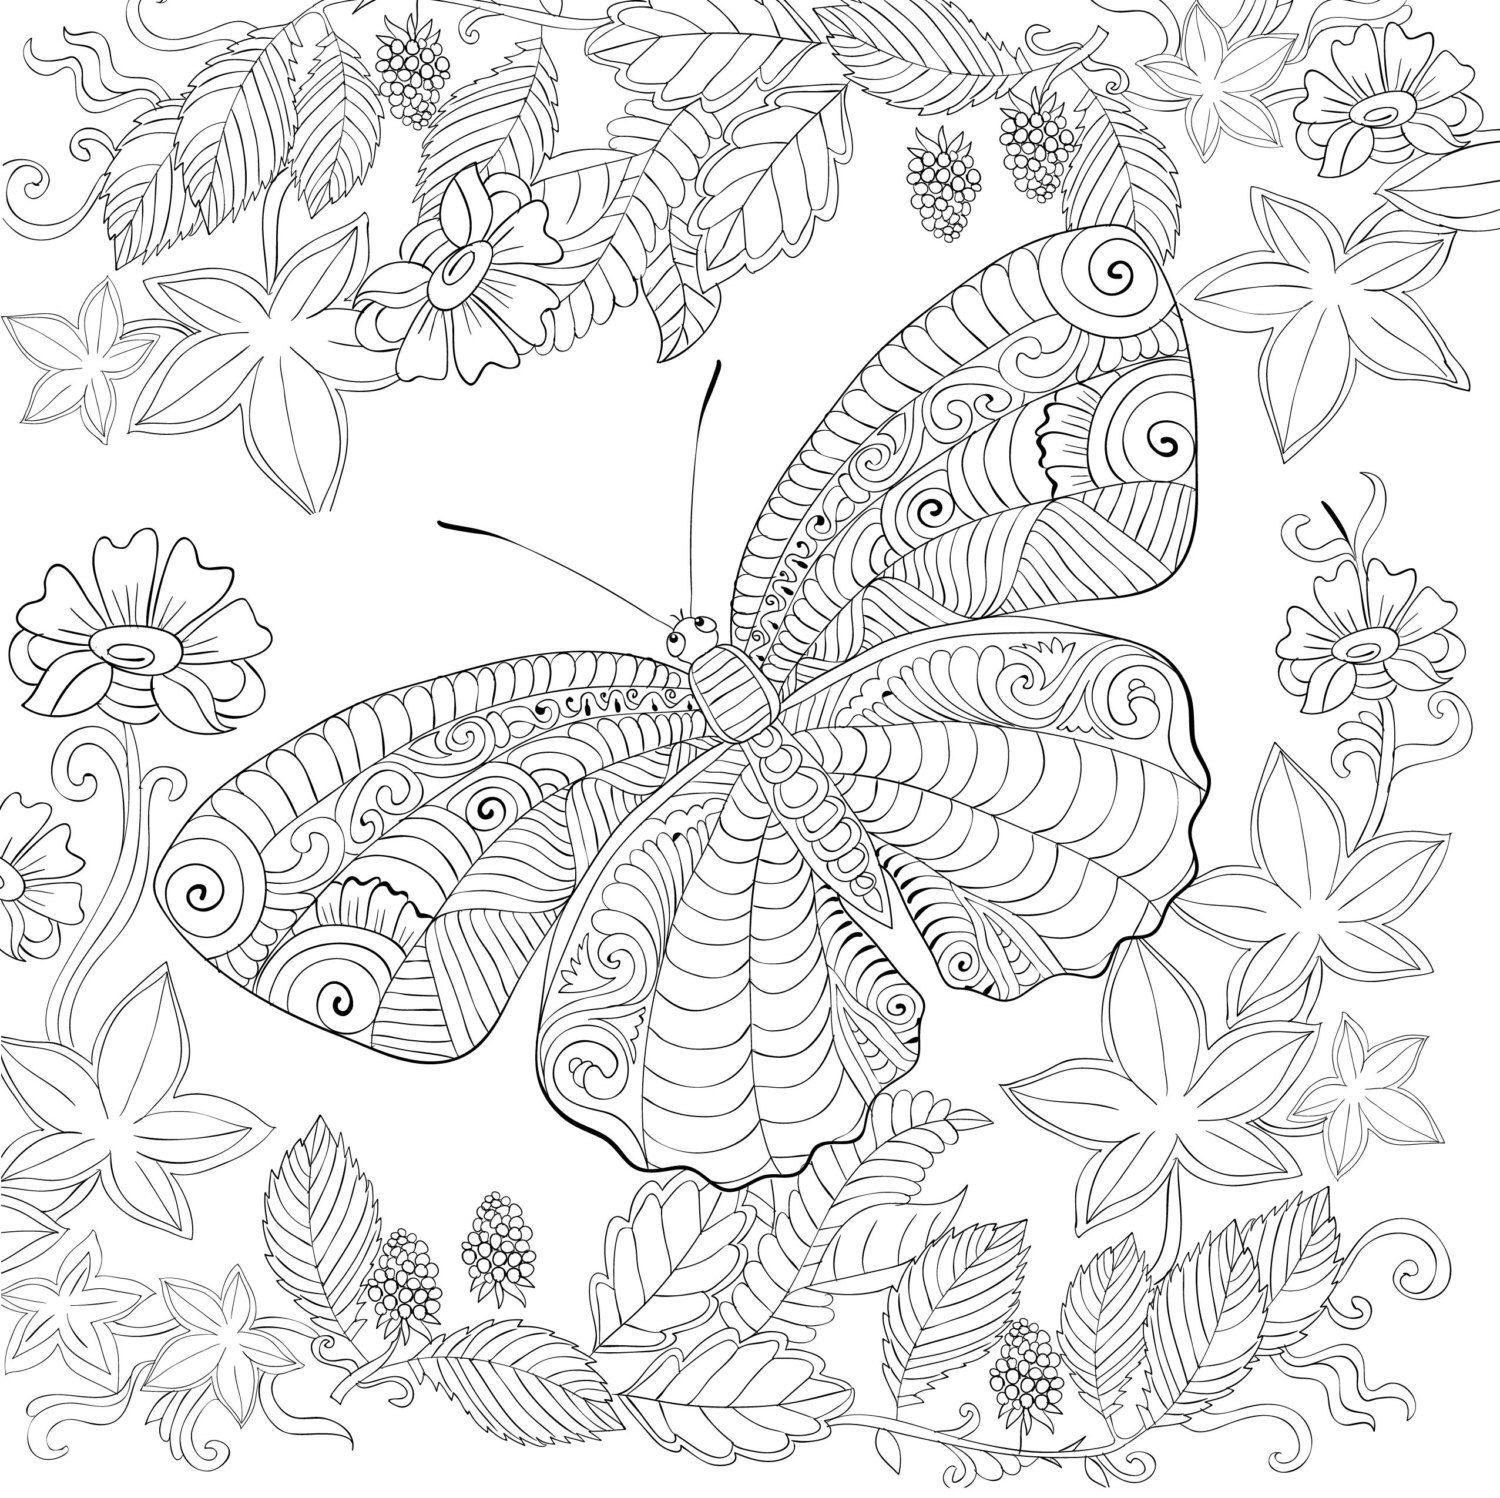 Biutterfly Coloring Page For Calm Relaxation And Stress Relief